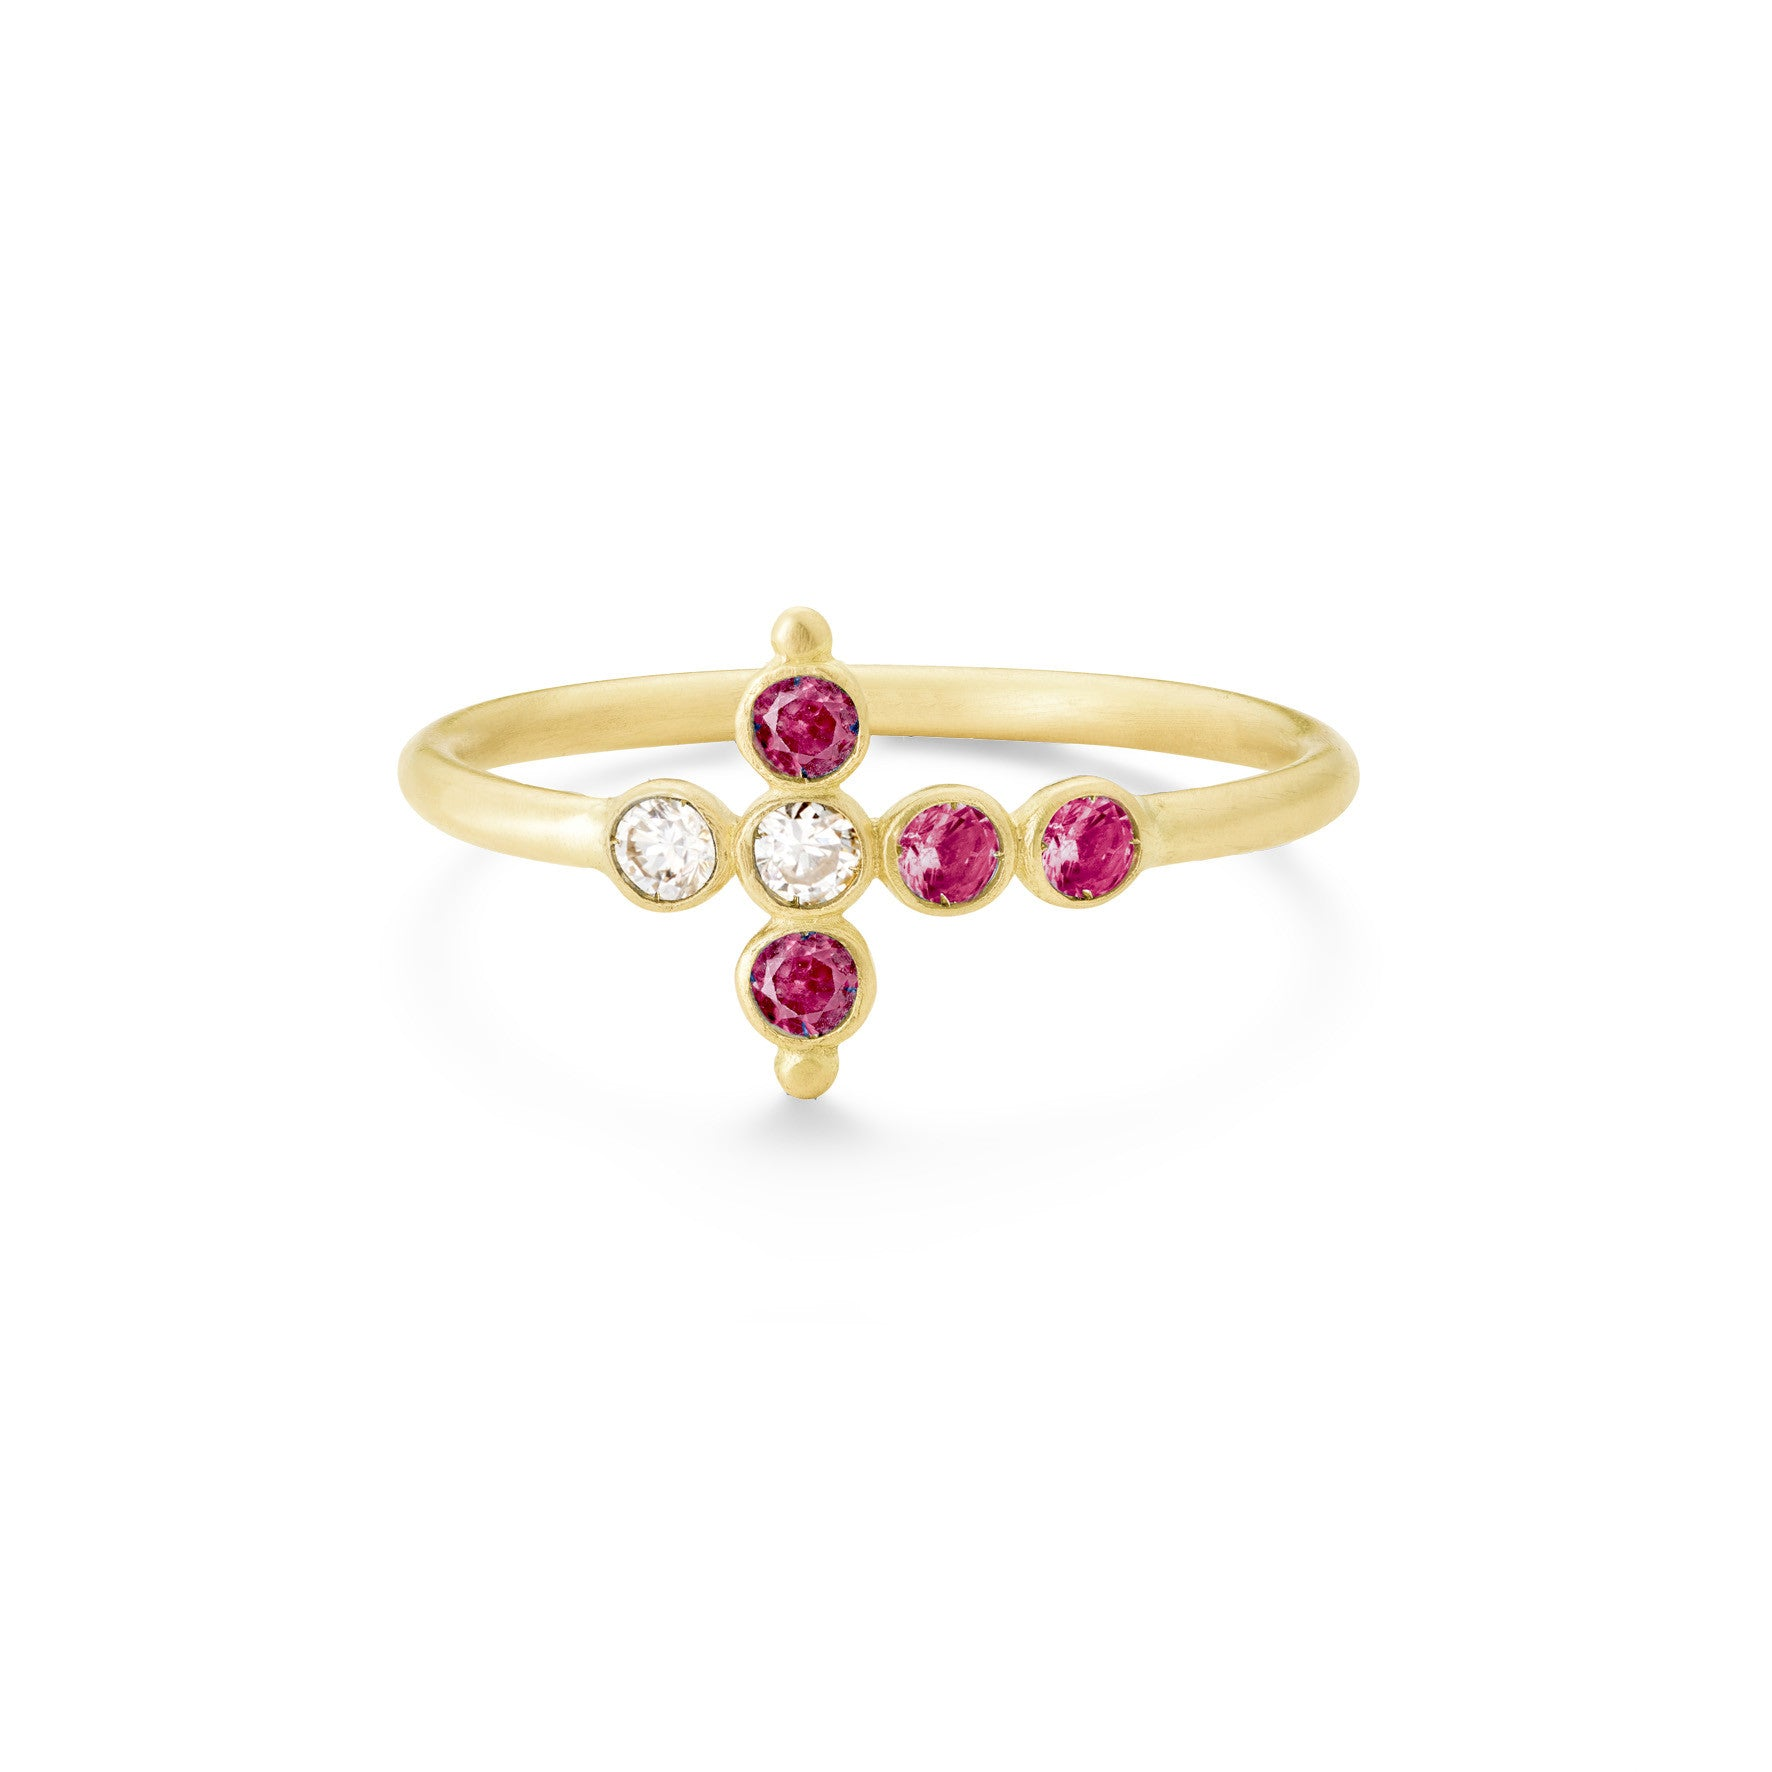 Bague Petit AA Or jaune, Rubis et Diamants